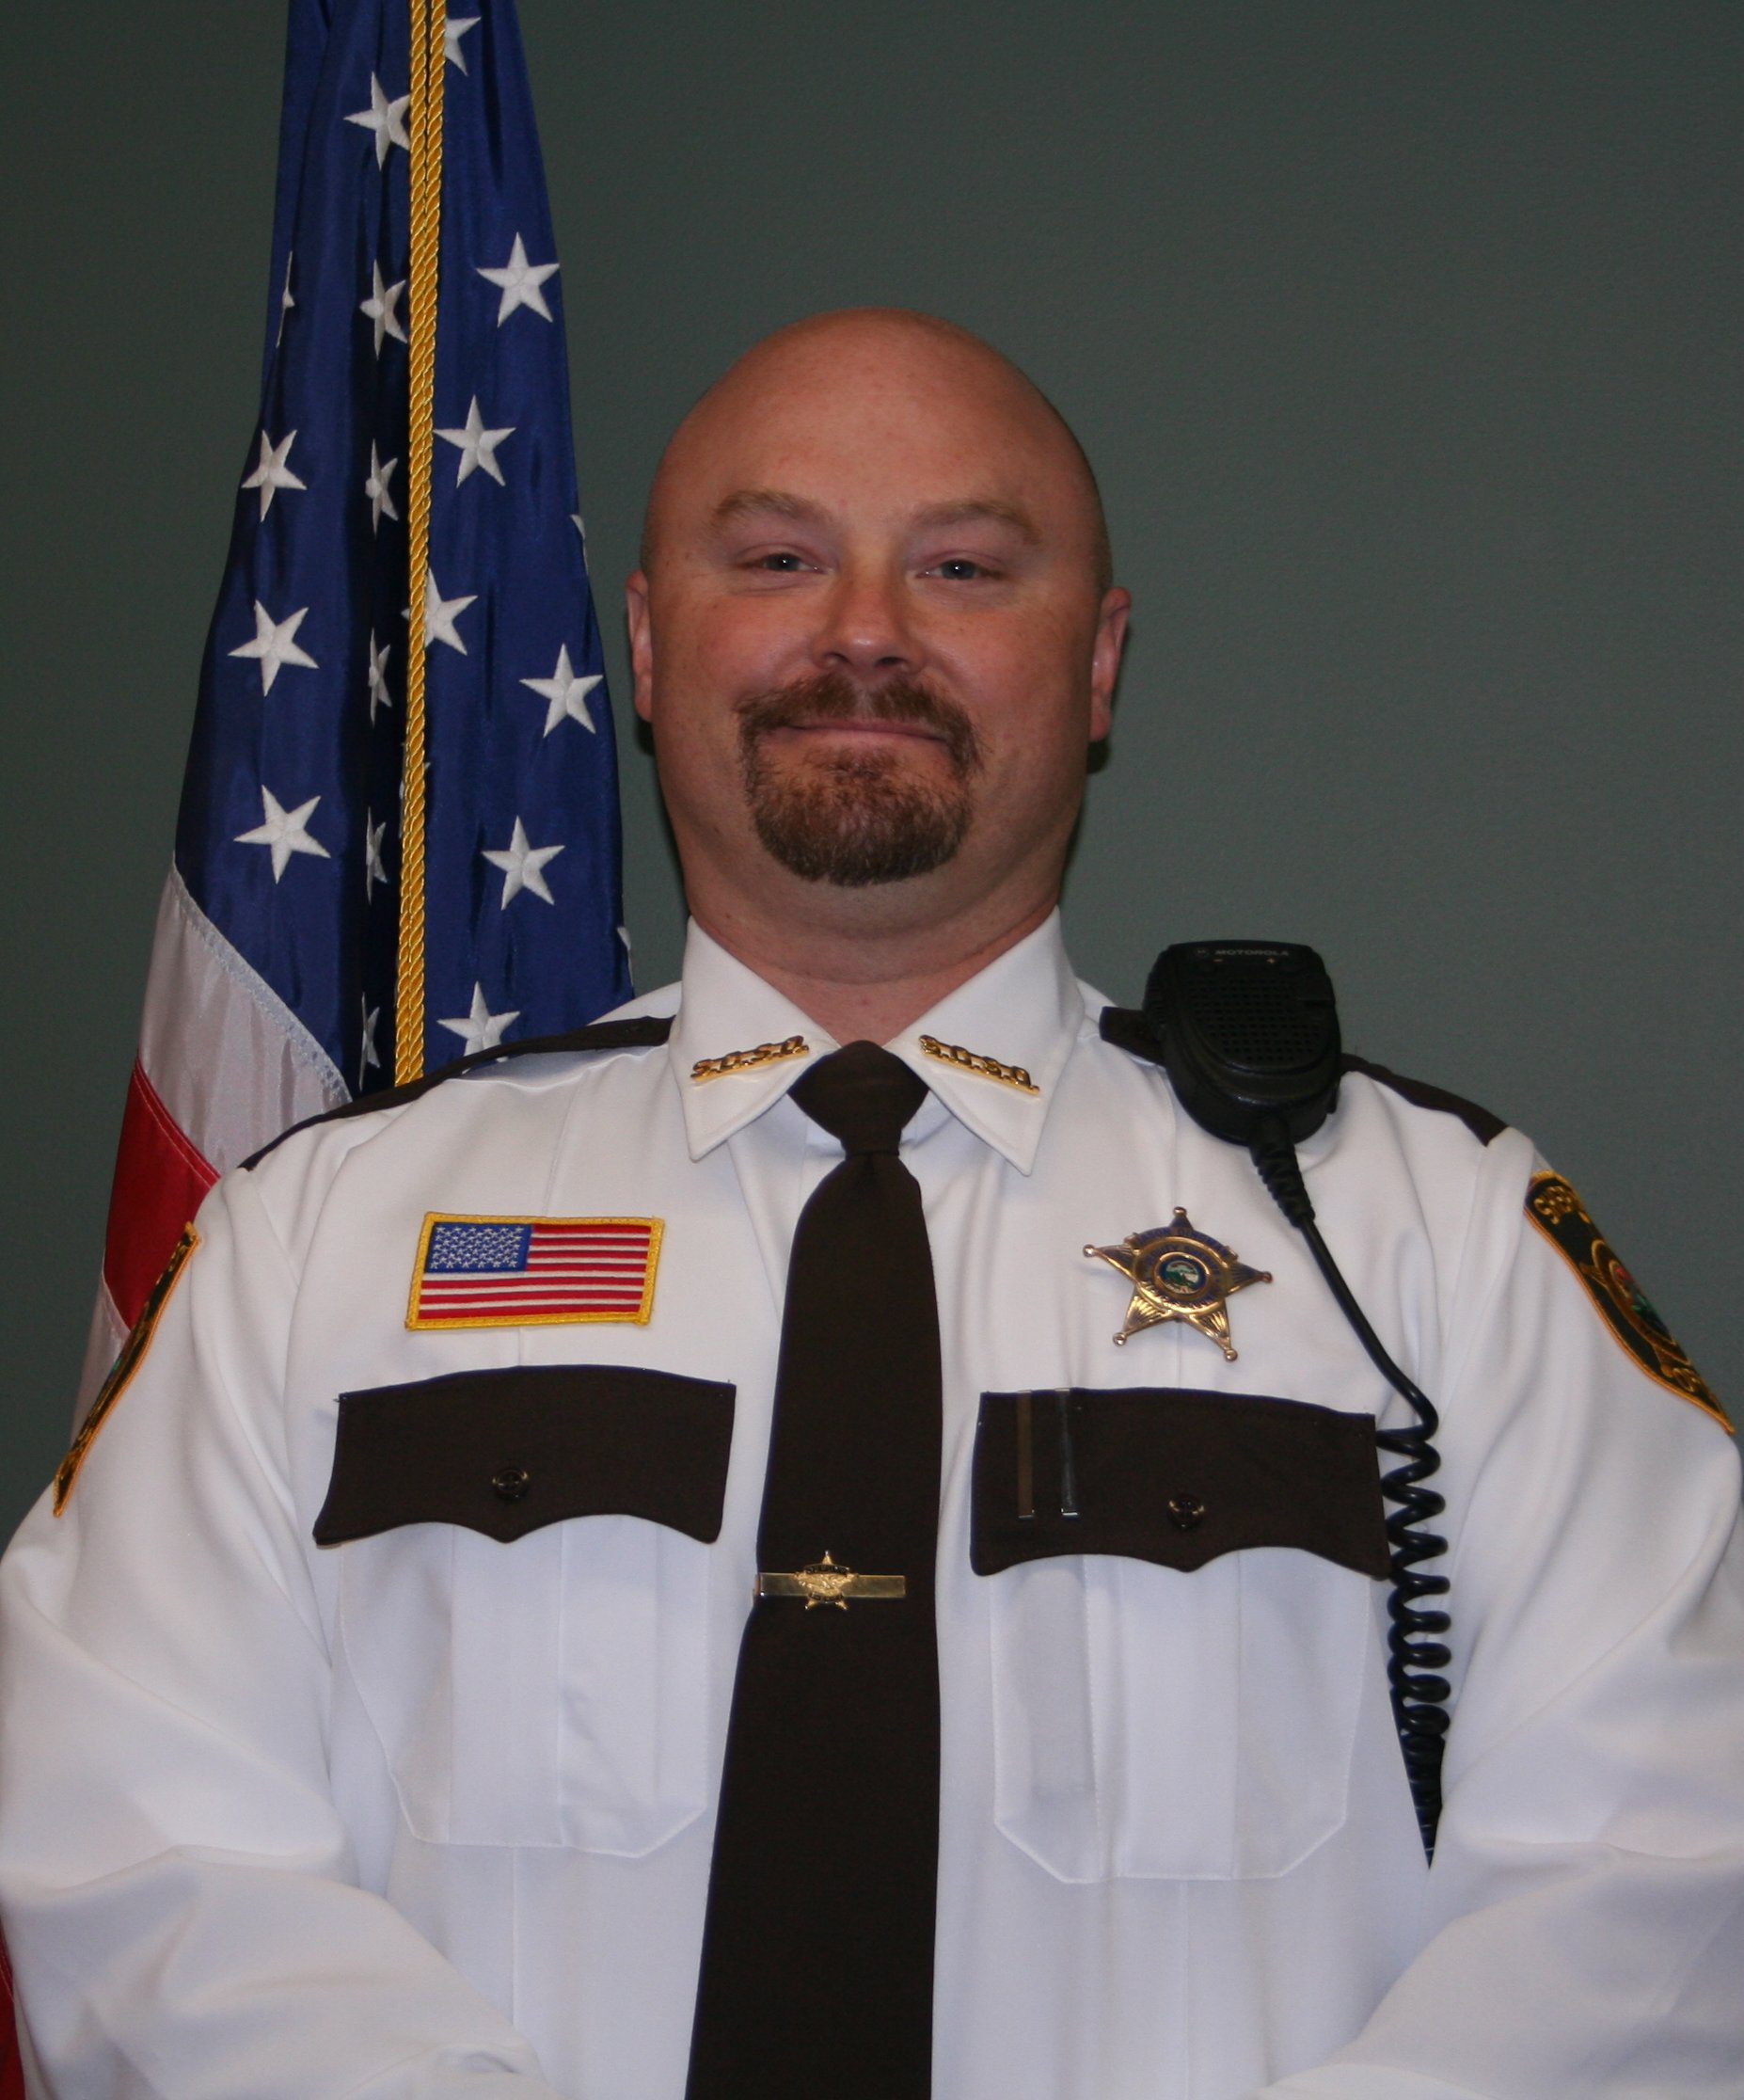 Sheriff Jason Dingman